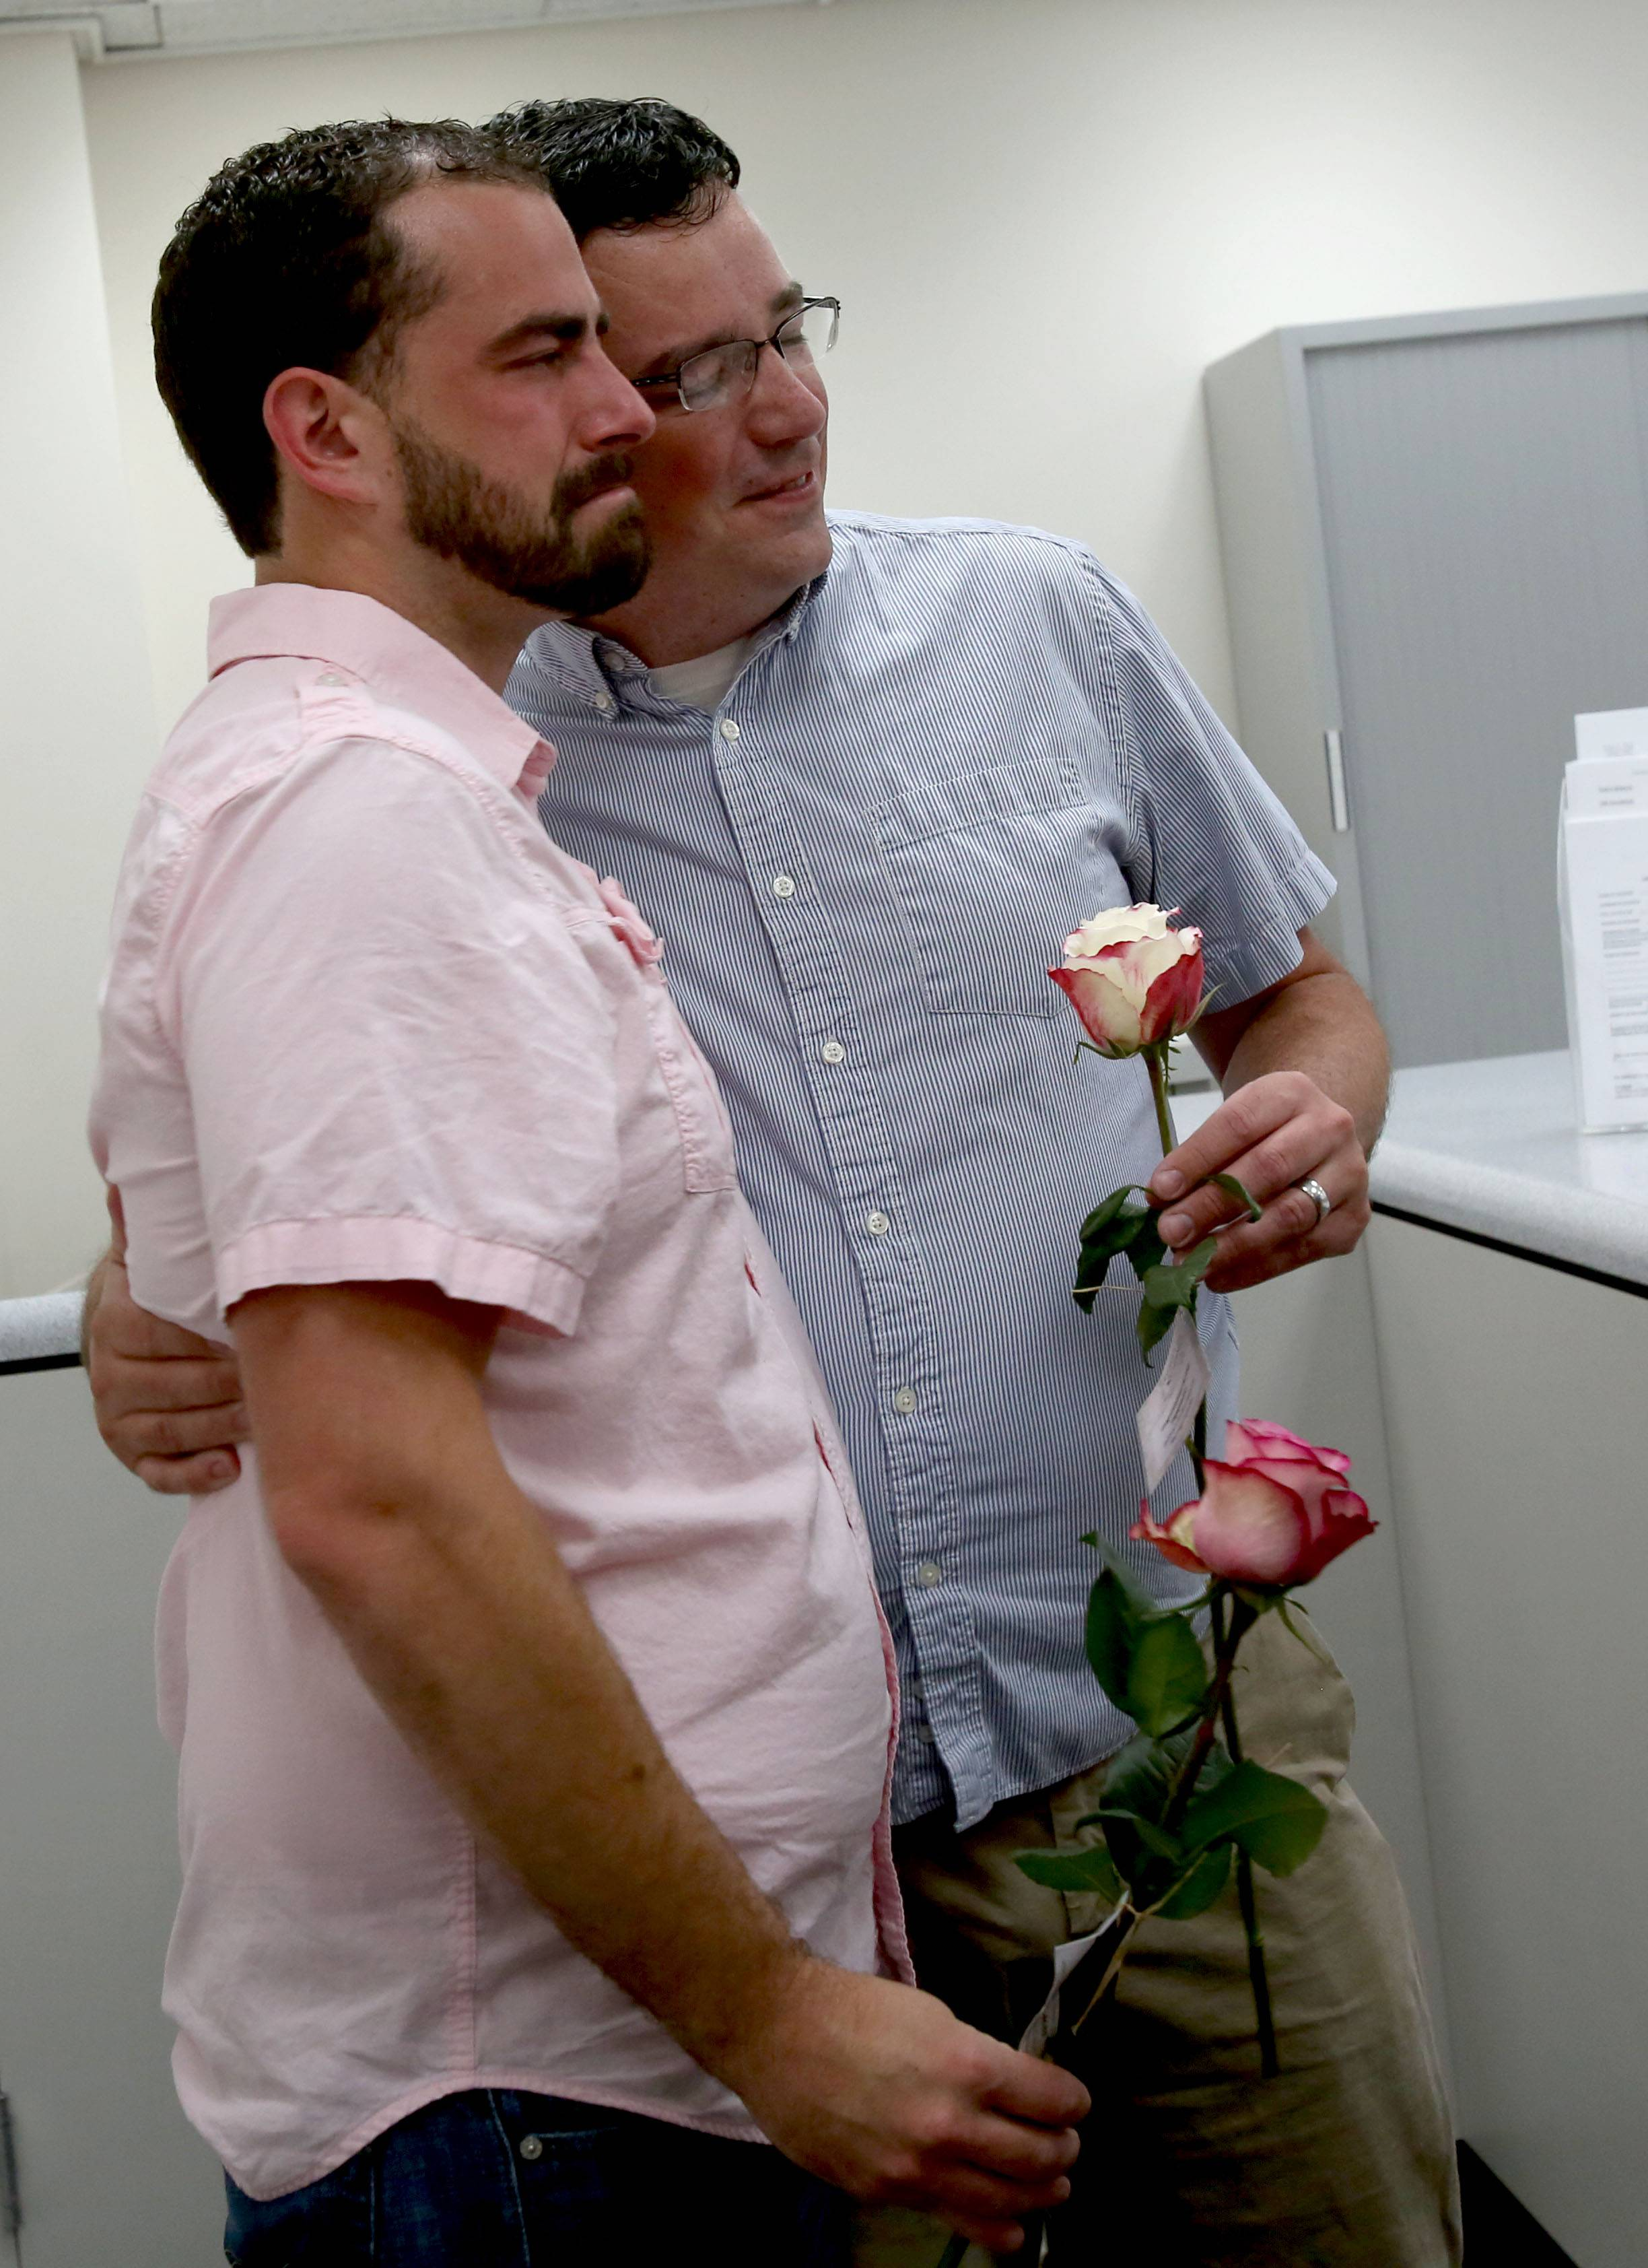 Mike Gary, left and Michael Cannon, right, of Hanover Park, share an emotional hug before converting their civil union to a marriage license at the DuPage County Clerk's office in Wheaton on Monday.